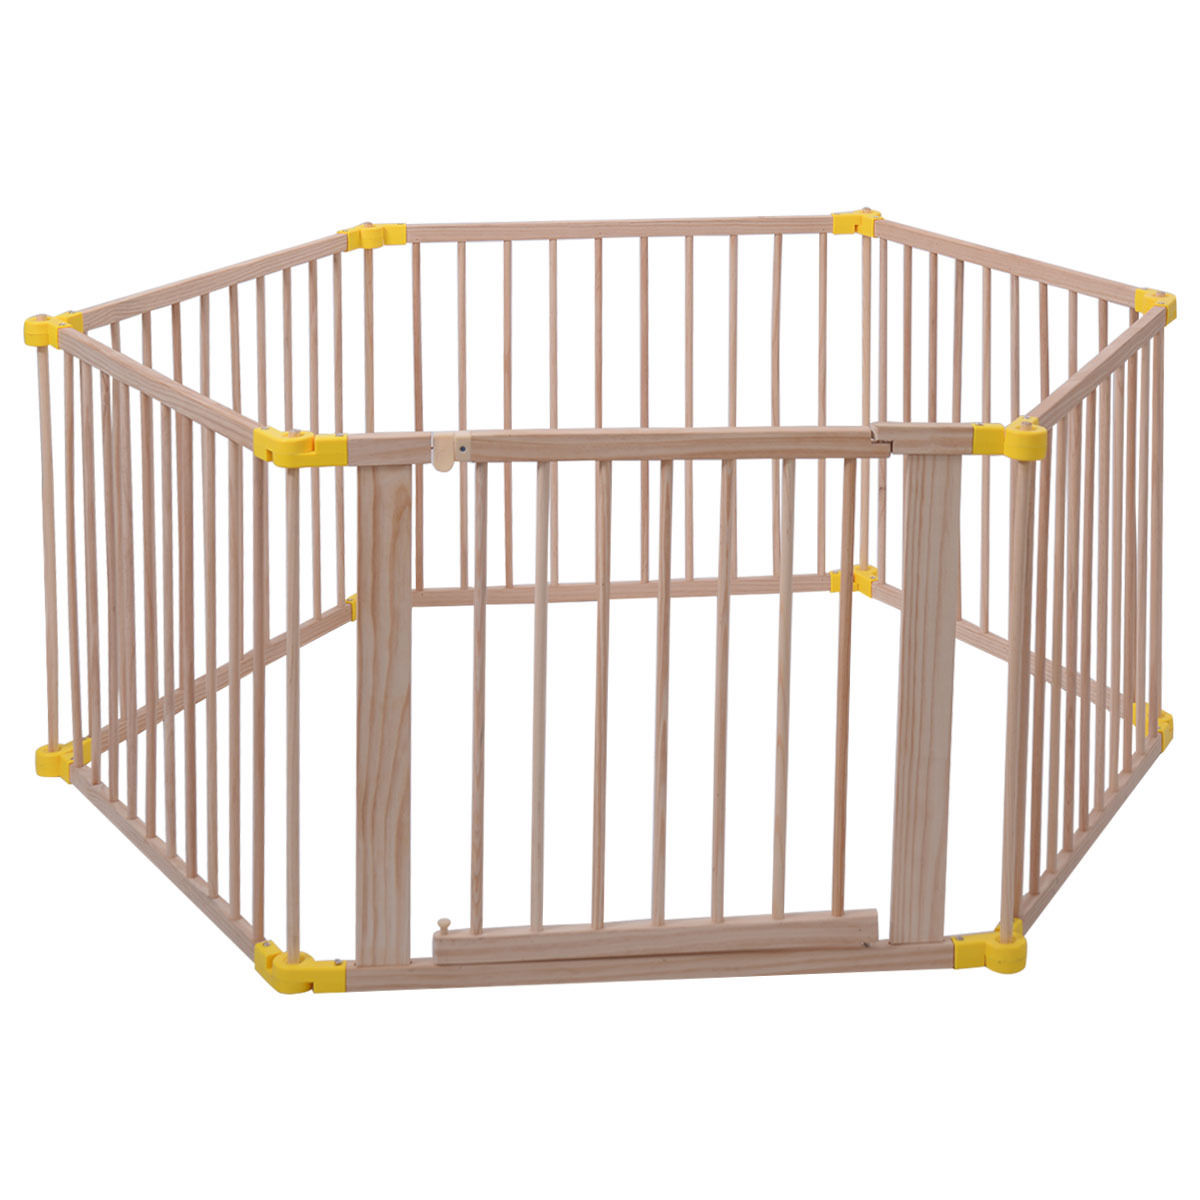 Goplus Baby Playpen 6 Panel Foldable Wooden Frame Kids Safety Play Fence In/Outdoor